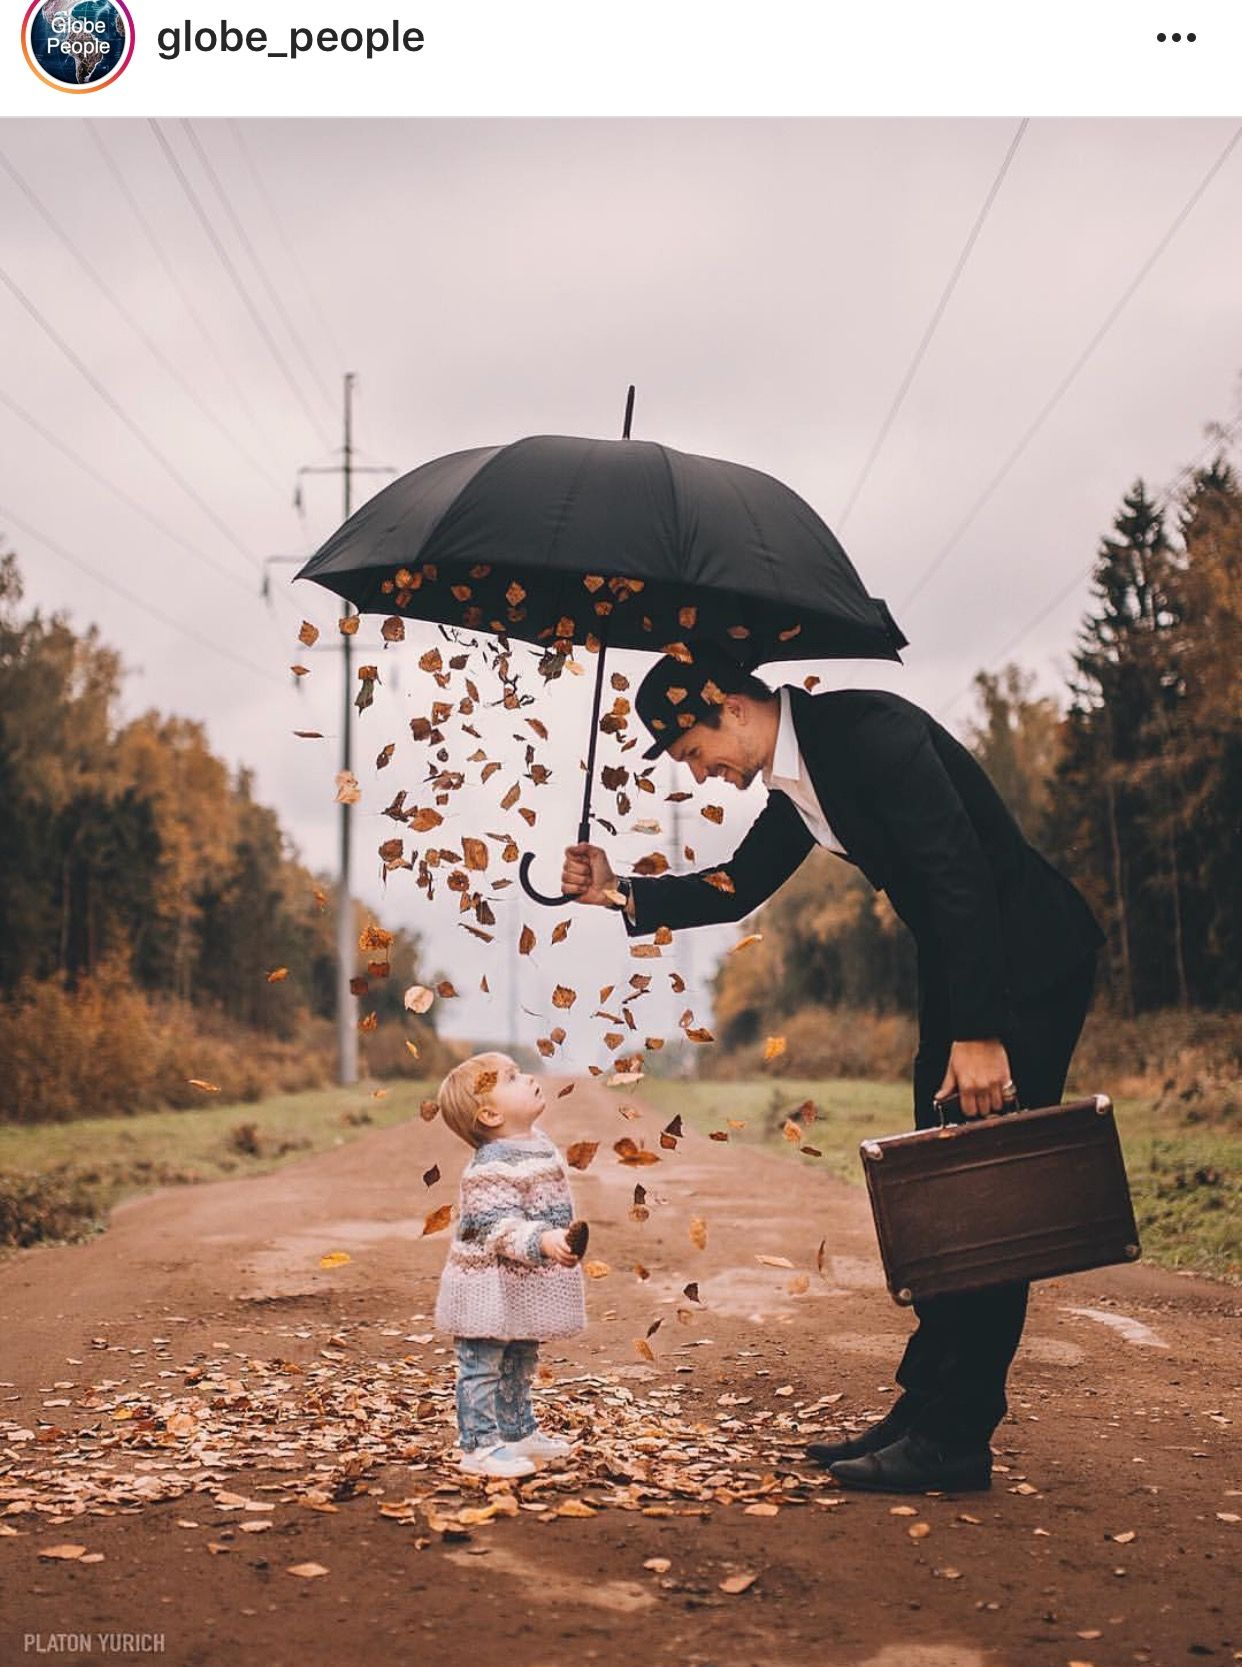 Pin by Stacy Tibbitts on Portrait ideas- kids   Surreal ...